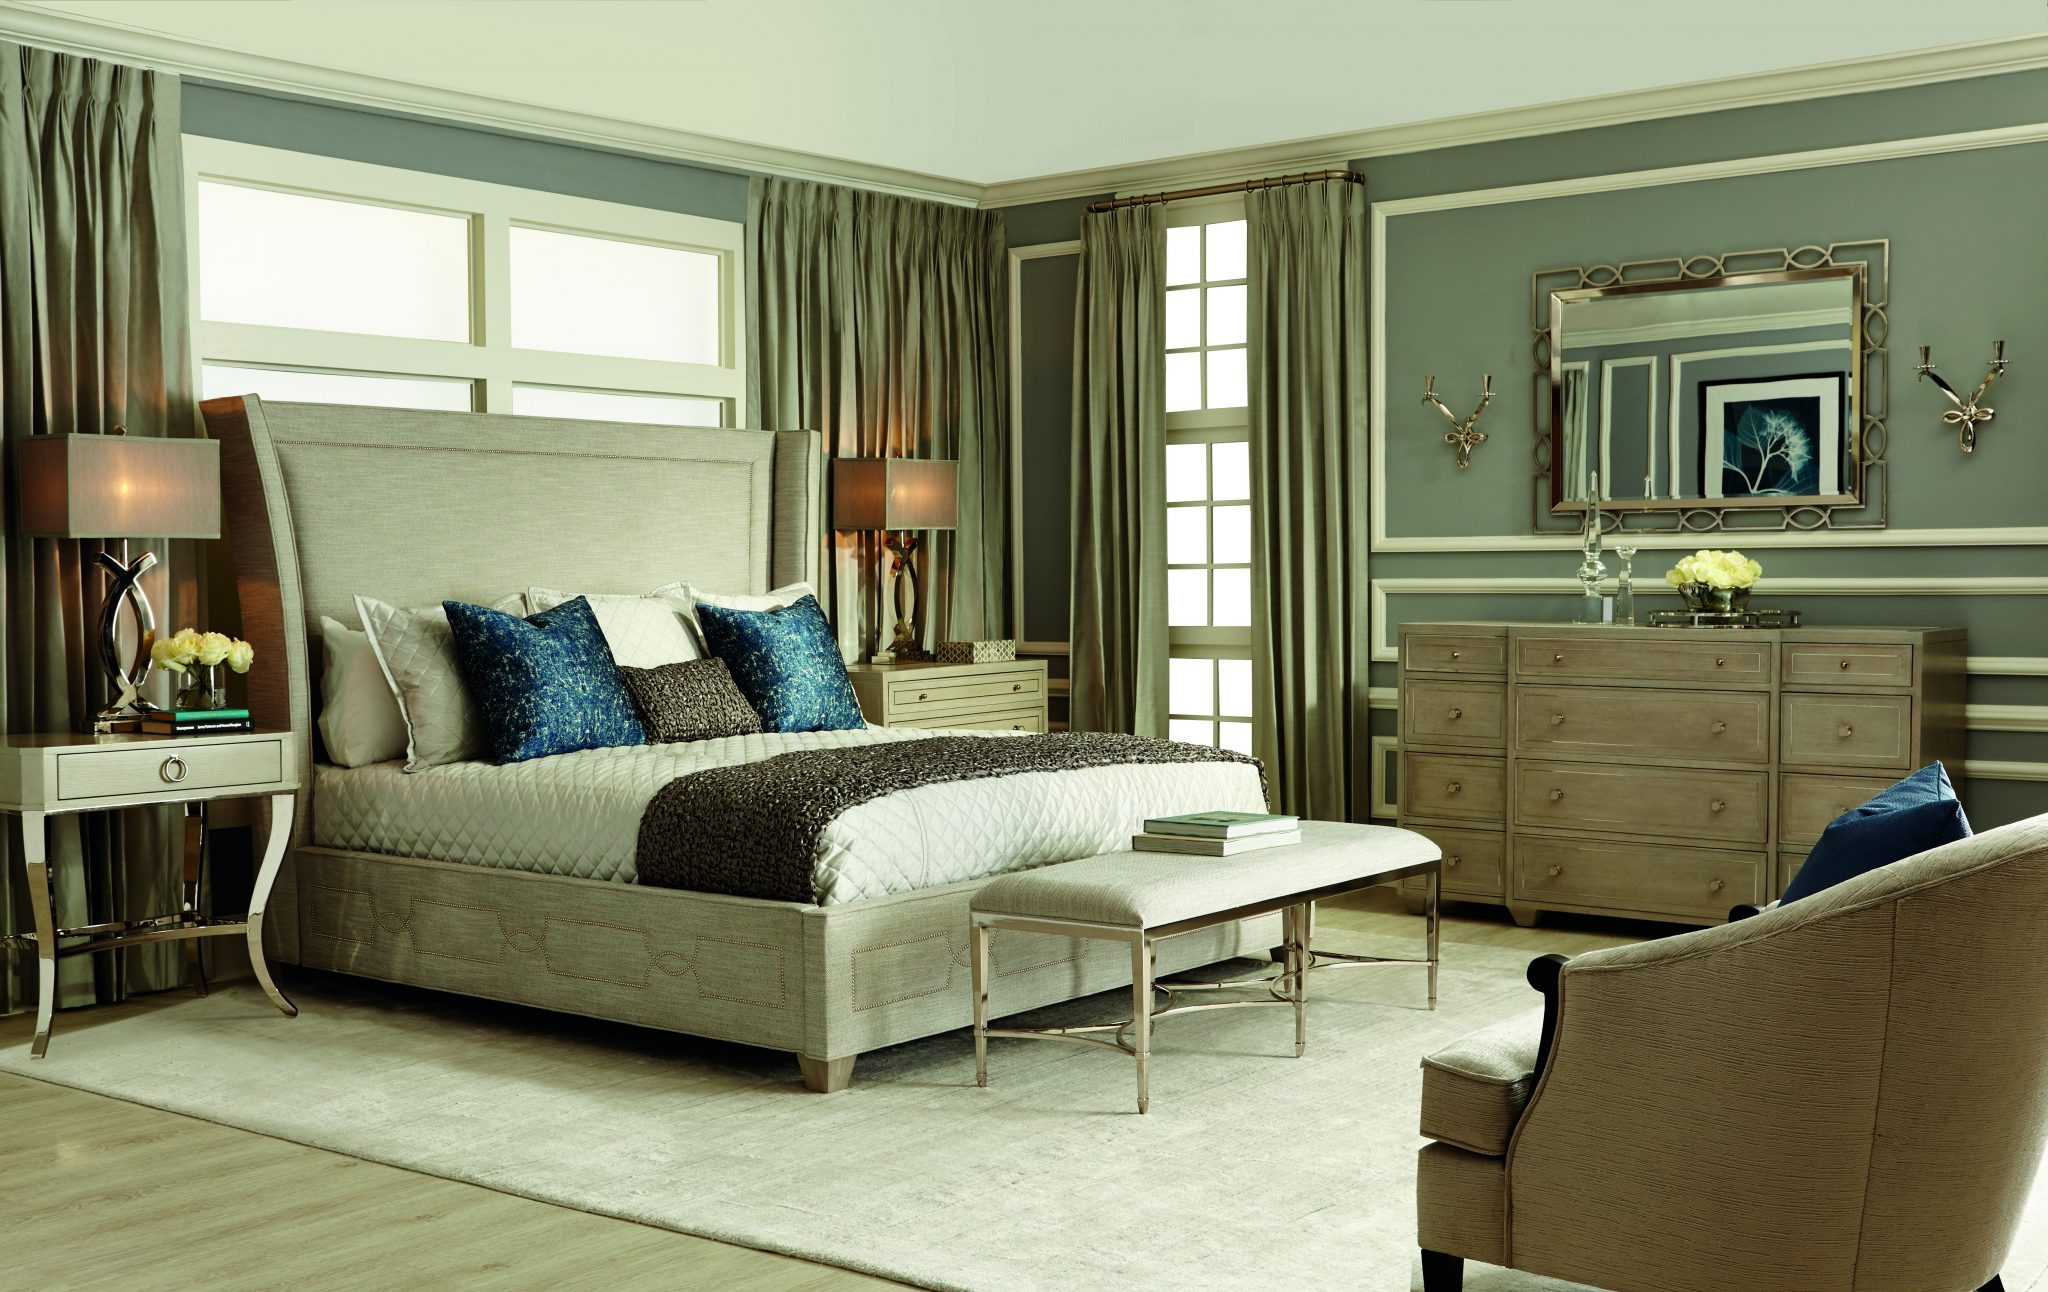 Bedroom Furniture and Decor - Cabot House